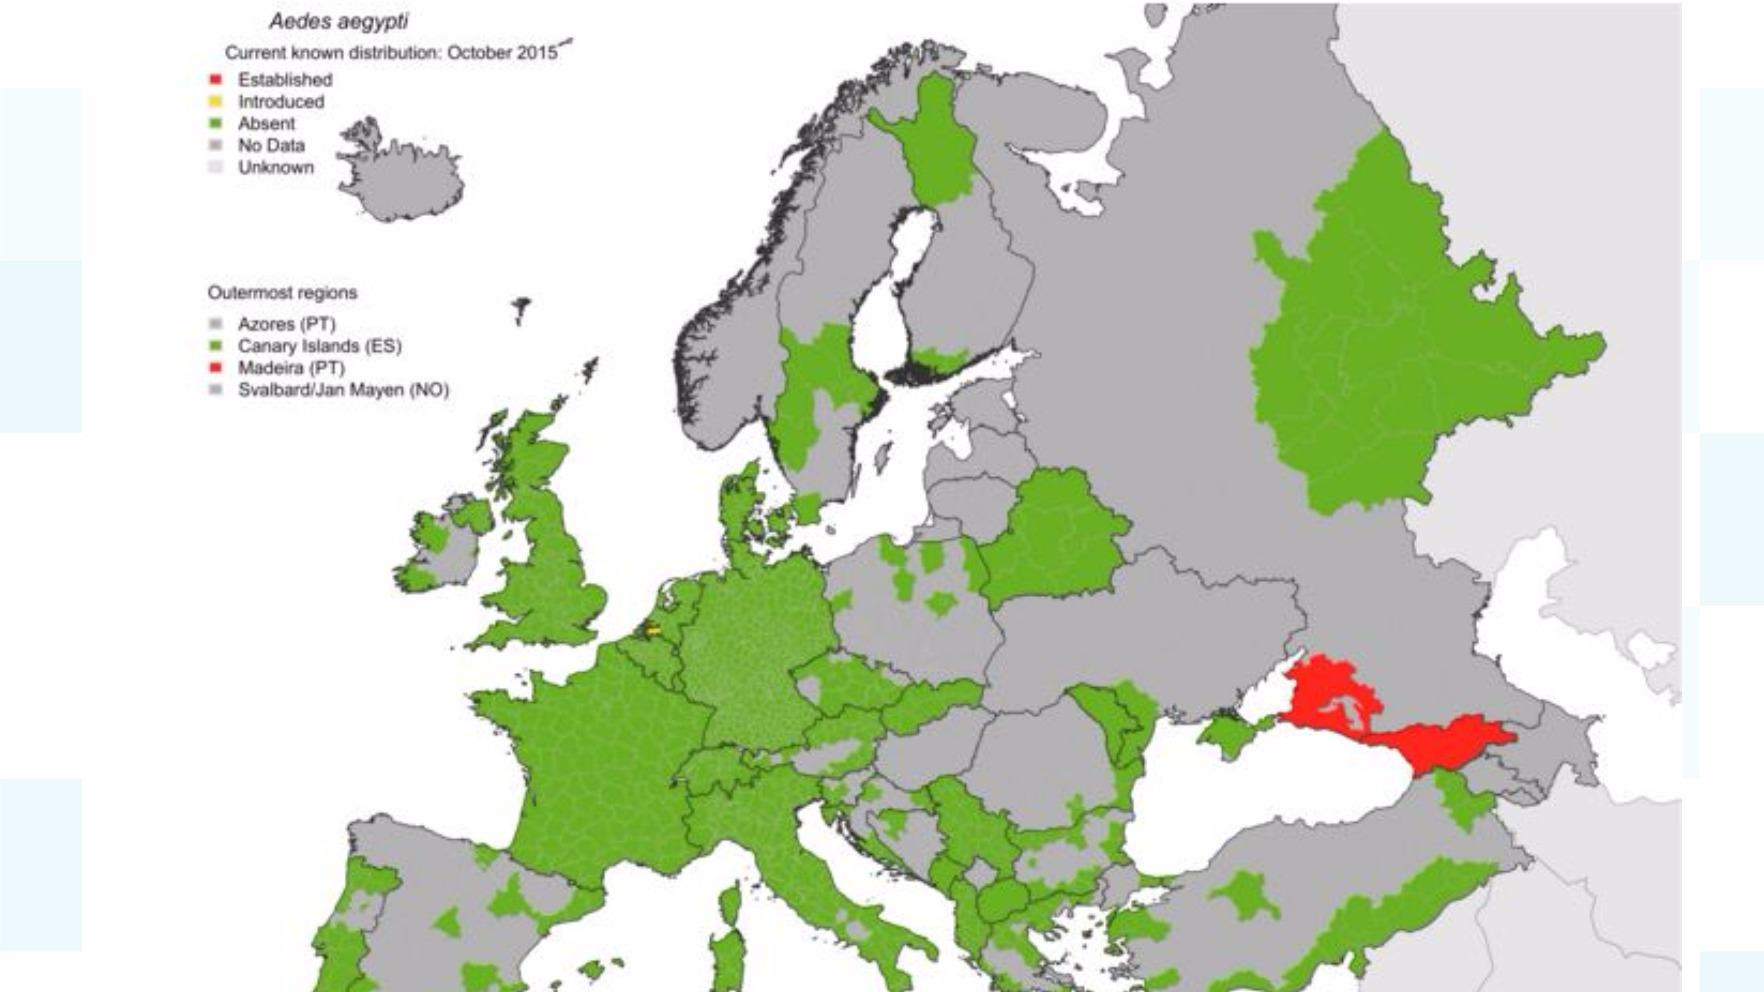 zika in europe map European countries could be at risk from Zika   ITV News